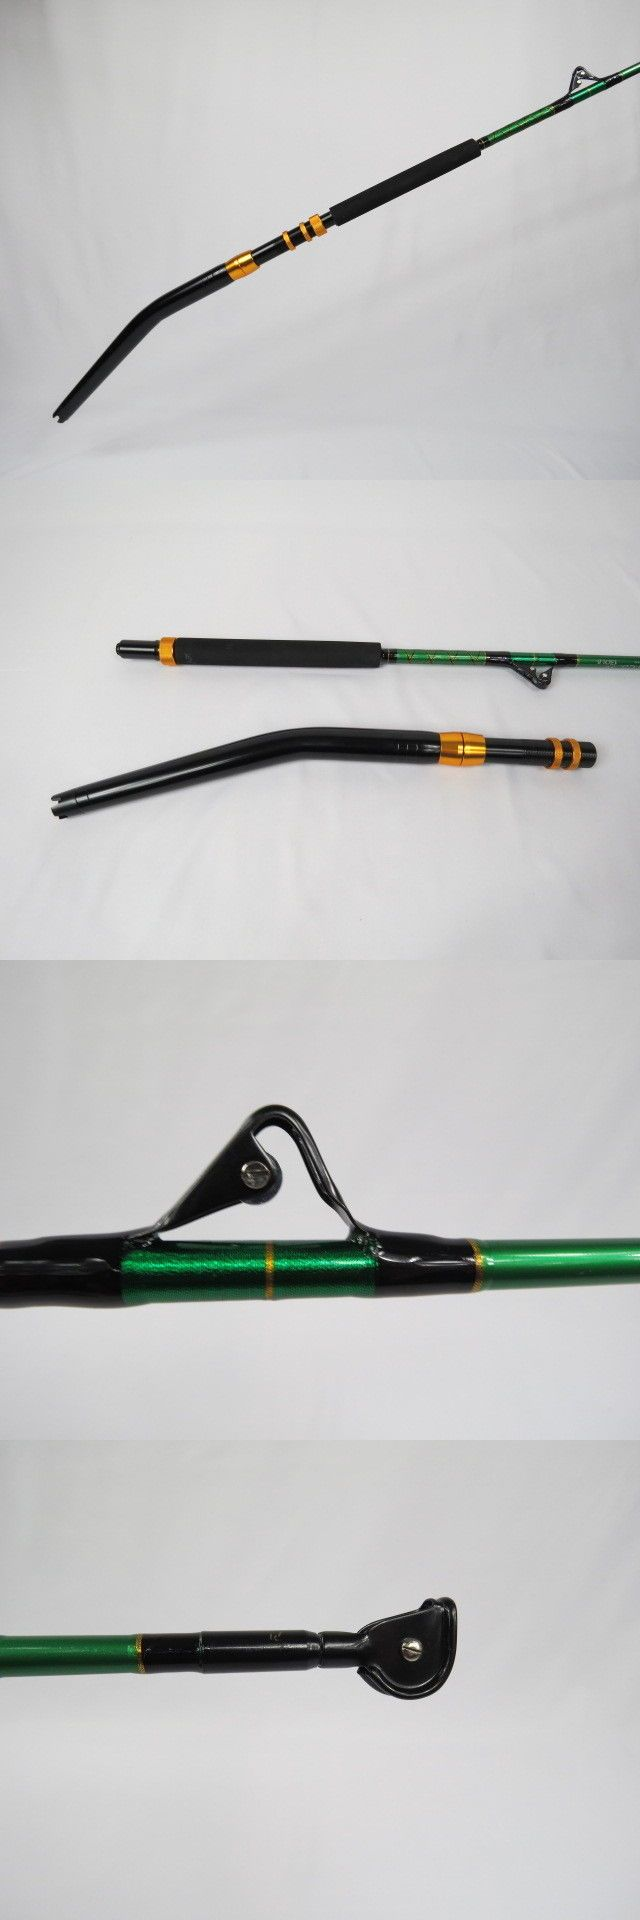 Saltwater Rods 179948: Coastal Rods - 130Lb Bent Butt Saltwater Boat Trolling Roller - Fishing Rod BUY IT NOW ONLY: $85.0